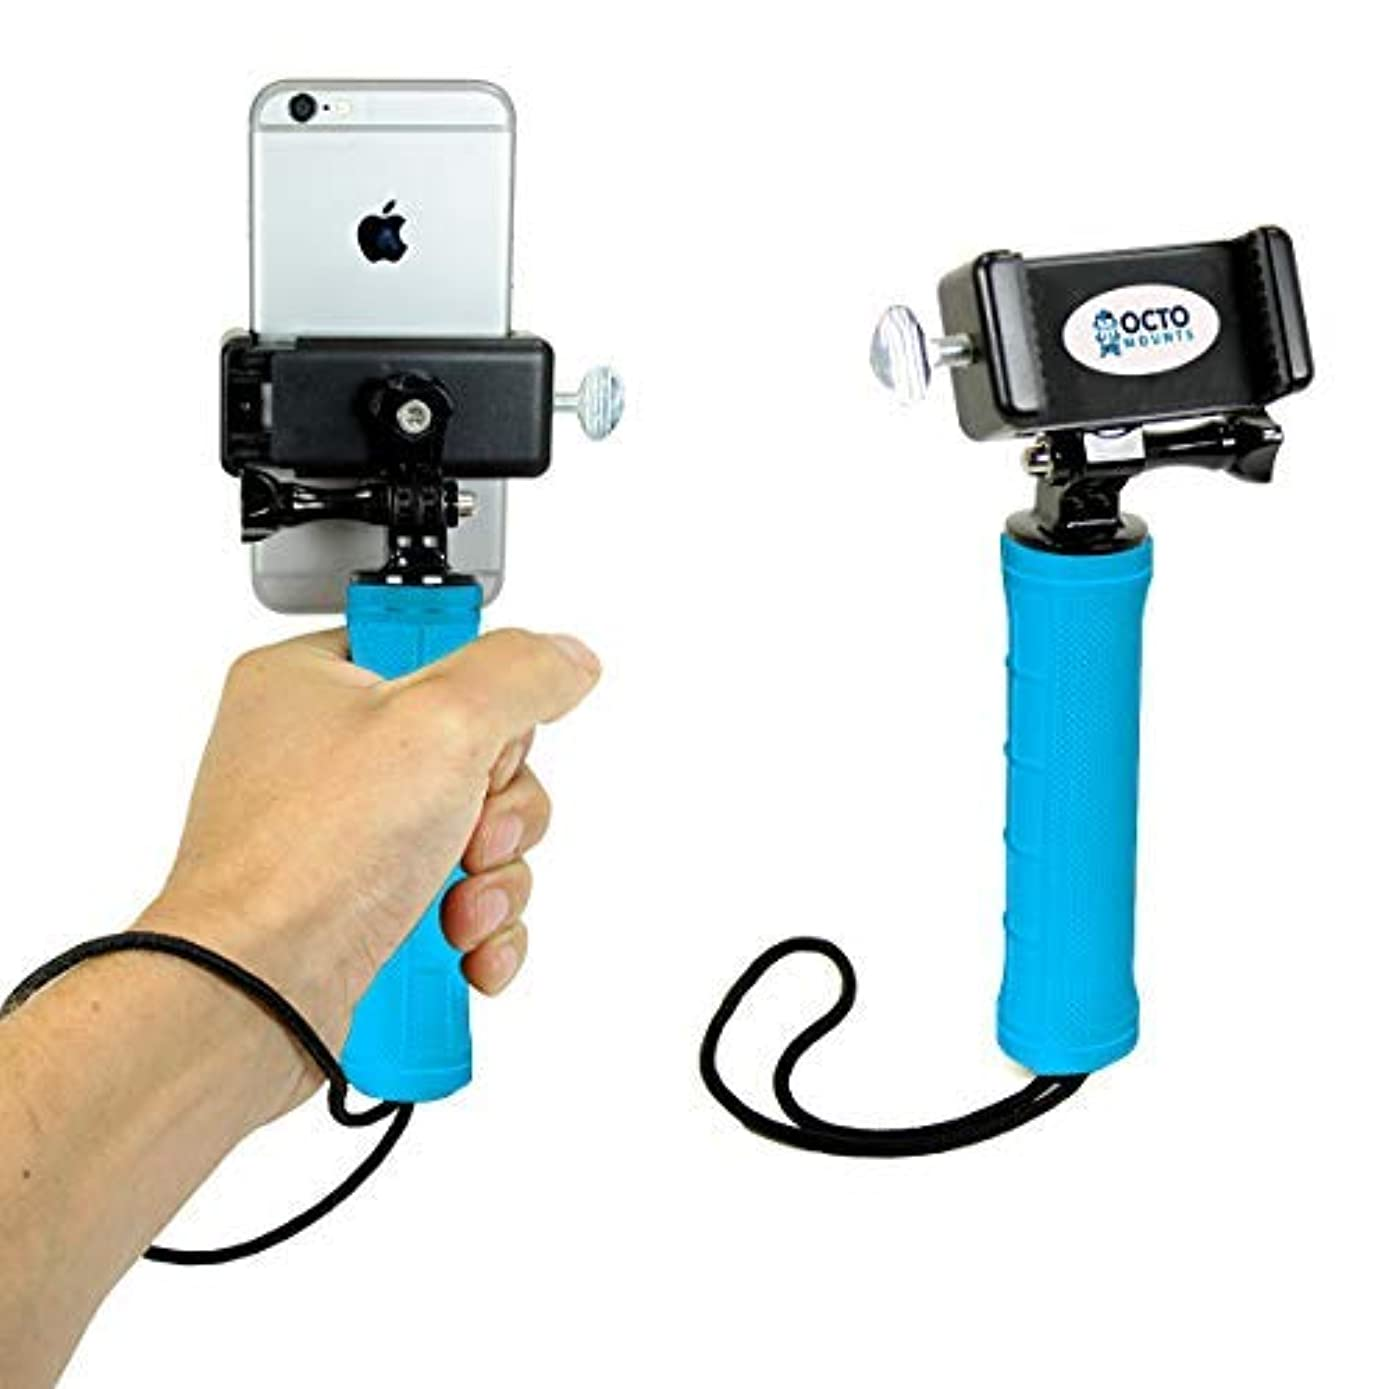 OCTO MOUNTS: Handheld Stabilizer for Cell Phone or GoPro Camera. Compatible with Action Cameras, DSLR, iPhones, Samsung Galaxy, HTC, etc. (HH Blue)